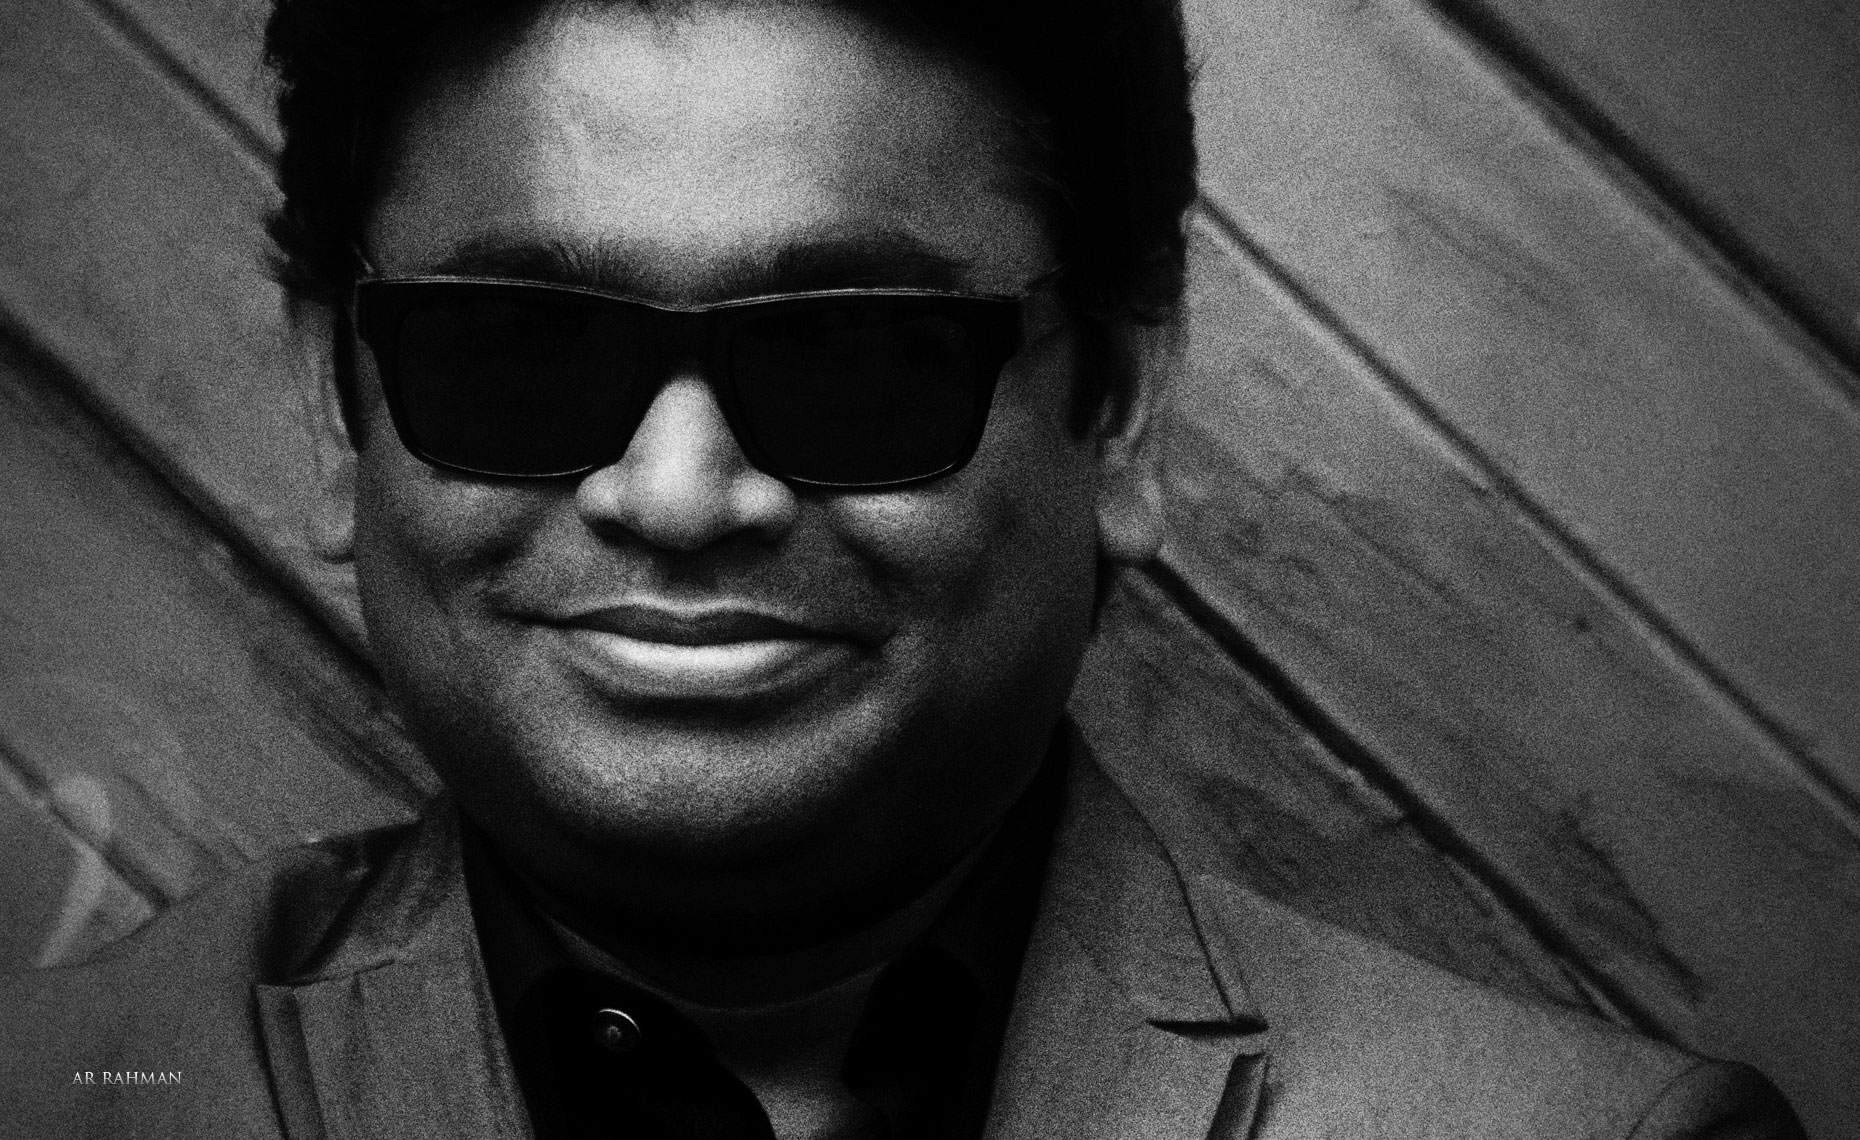 ar rahman with name.jpg